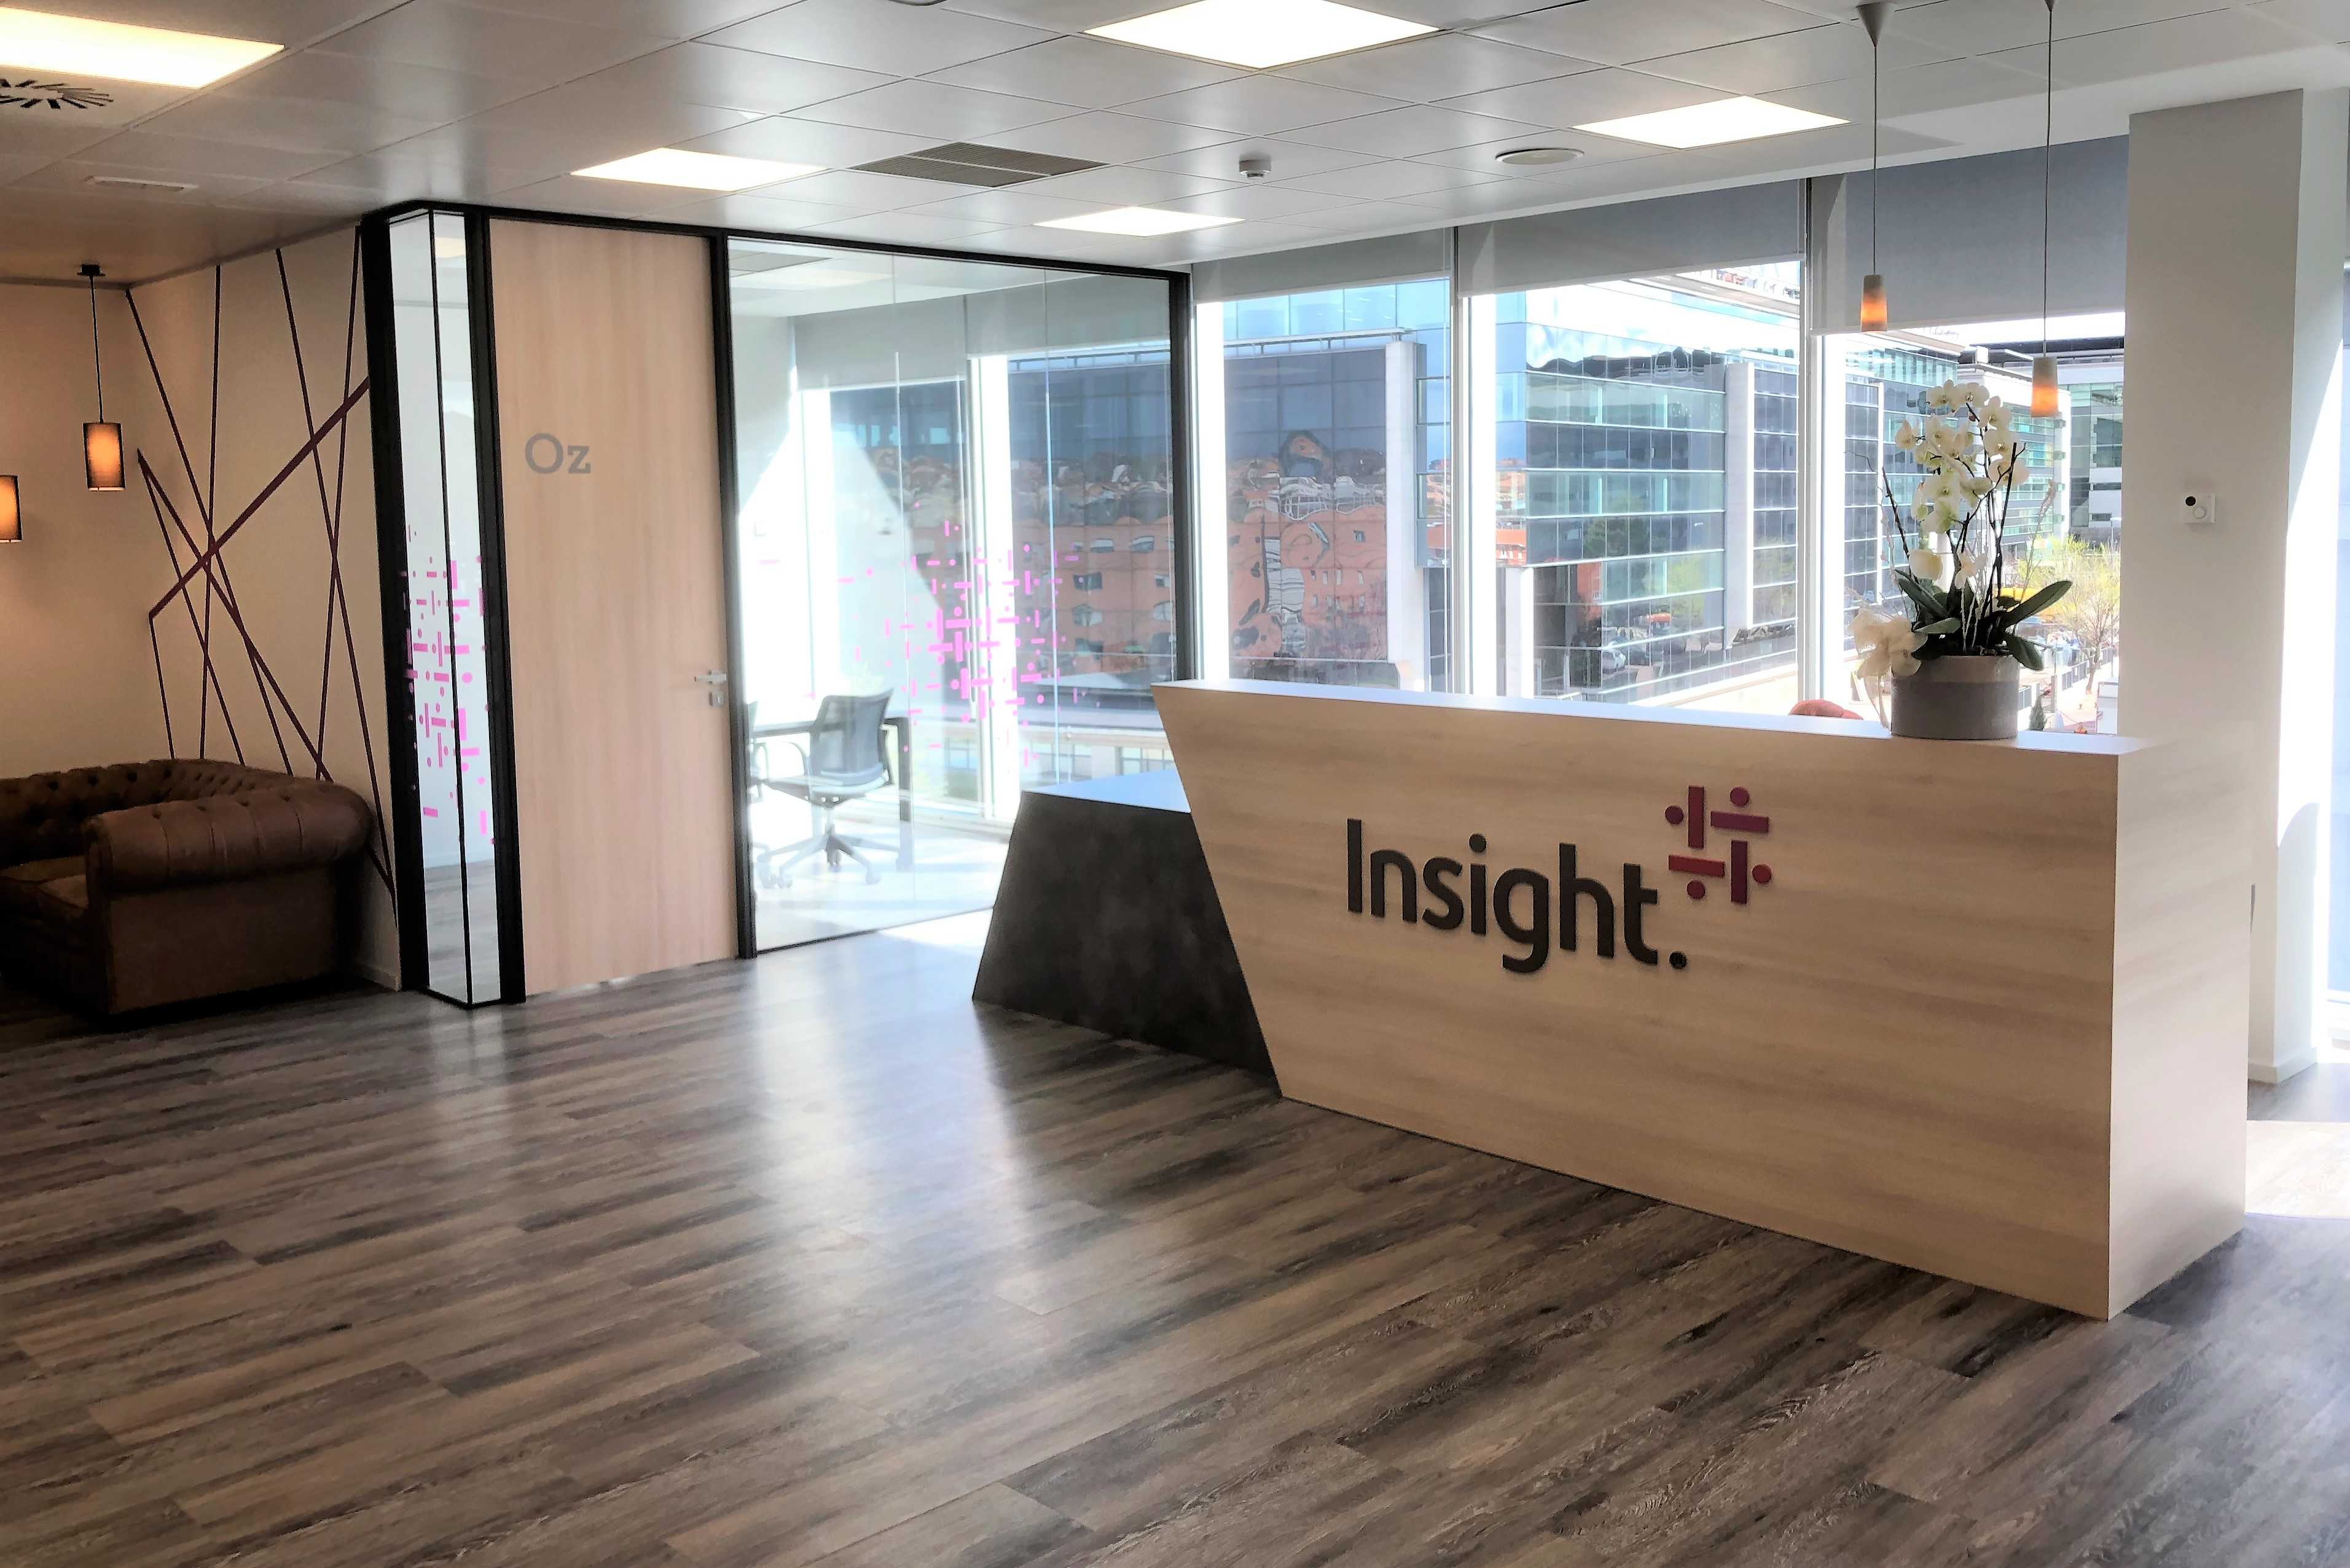 Oficinas Insight